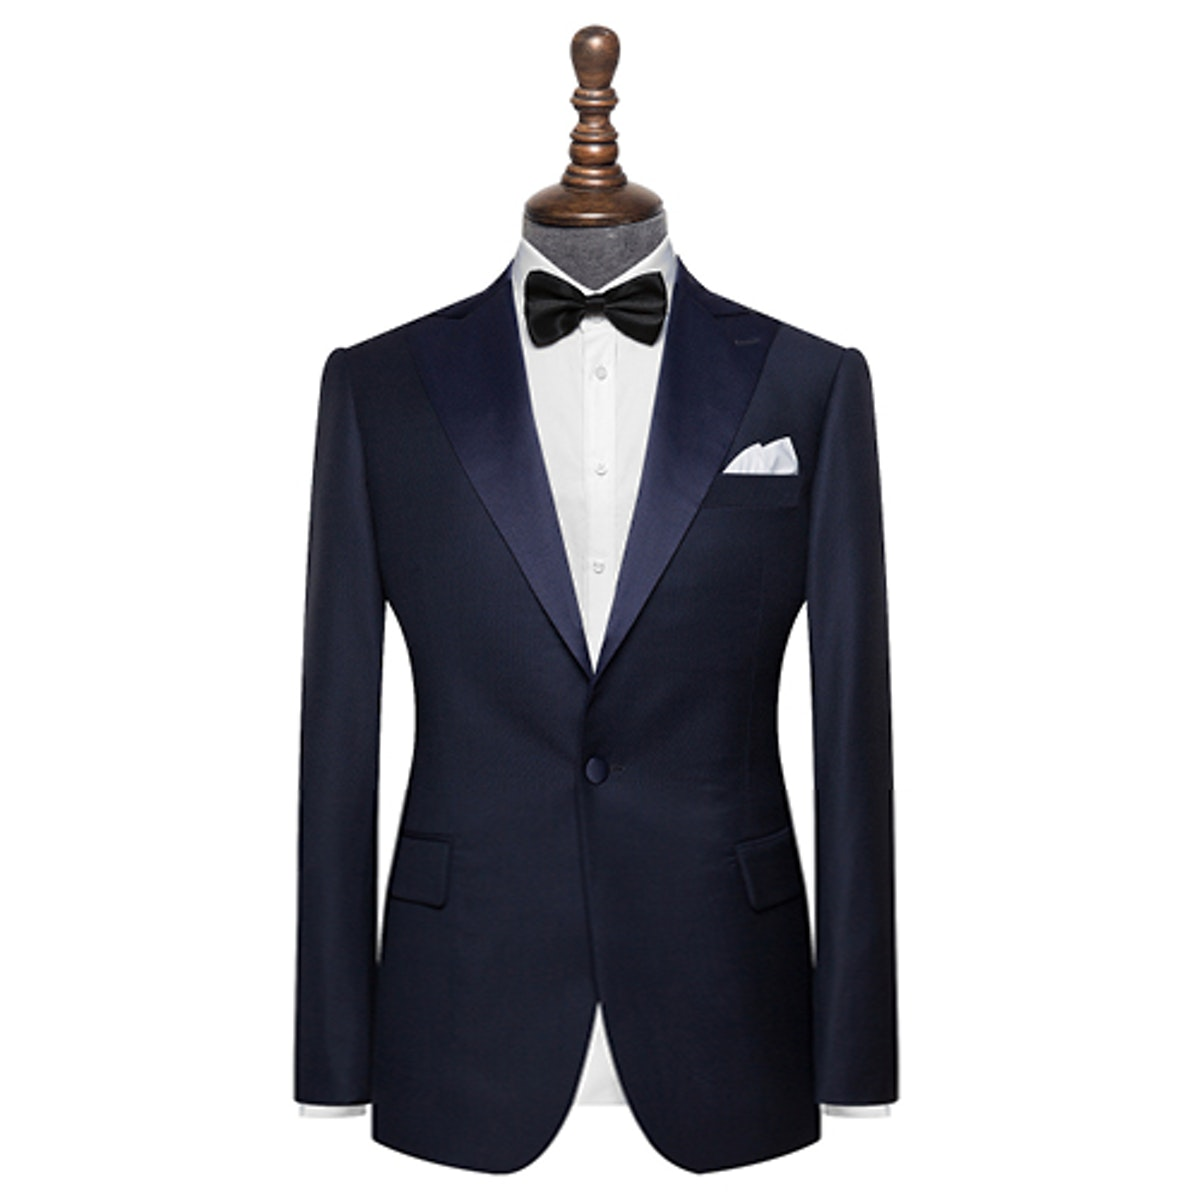 InStitchu Collection The Harlow mens suit